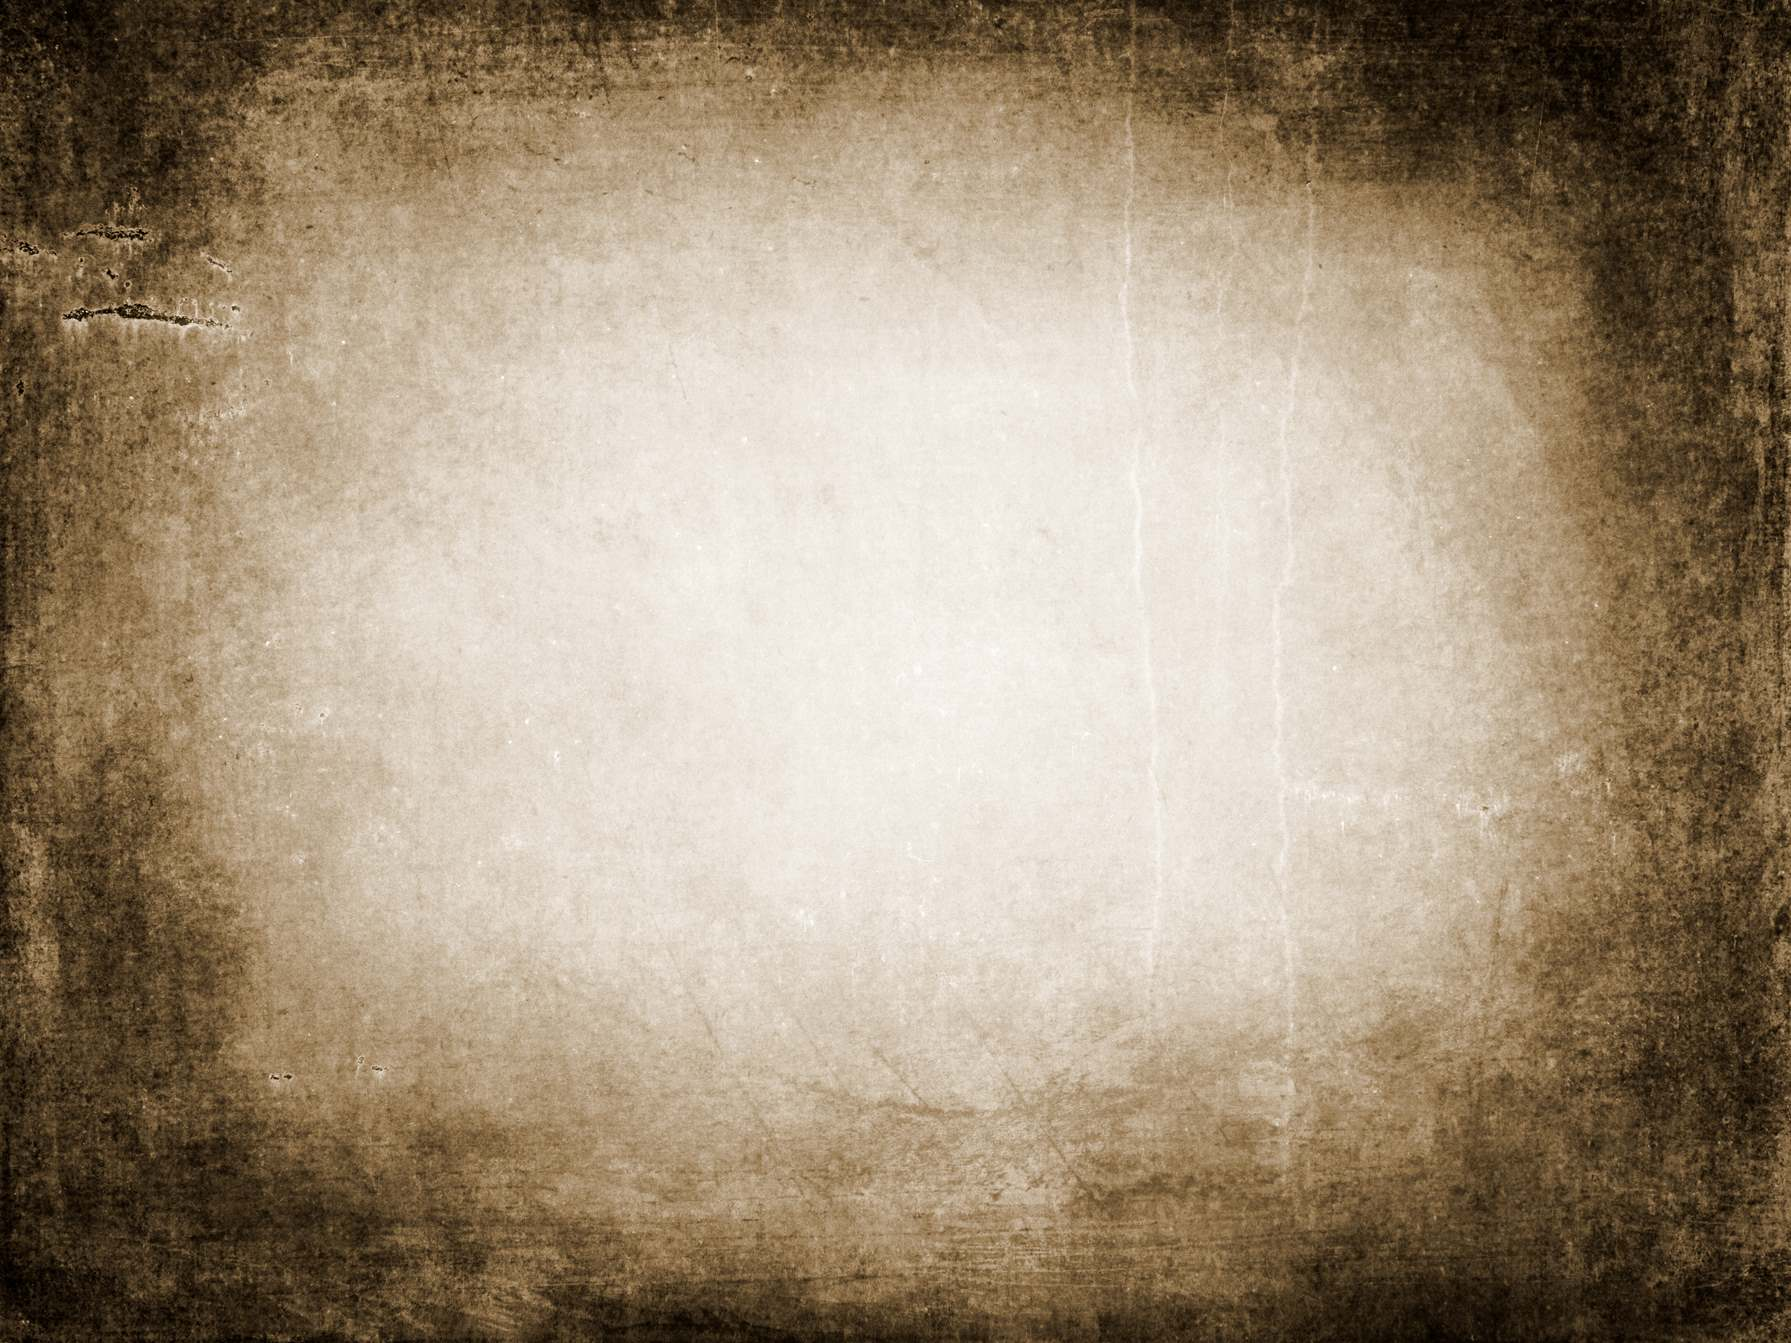 yellow brown vintage background photohdx